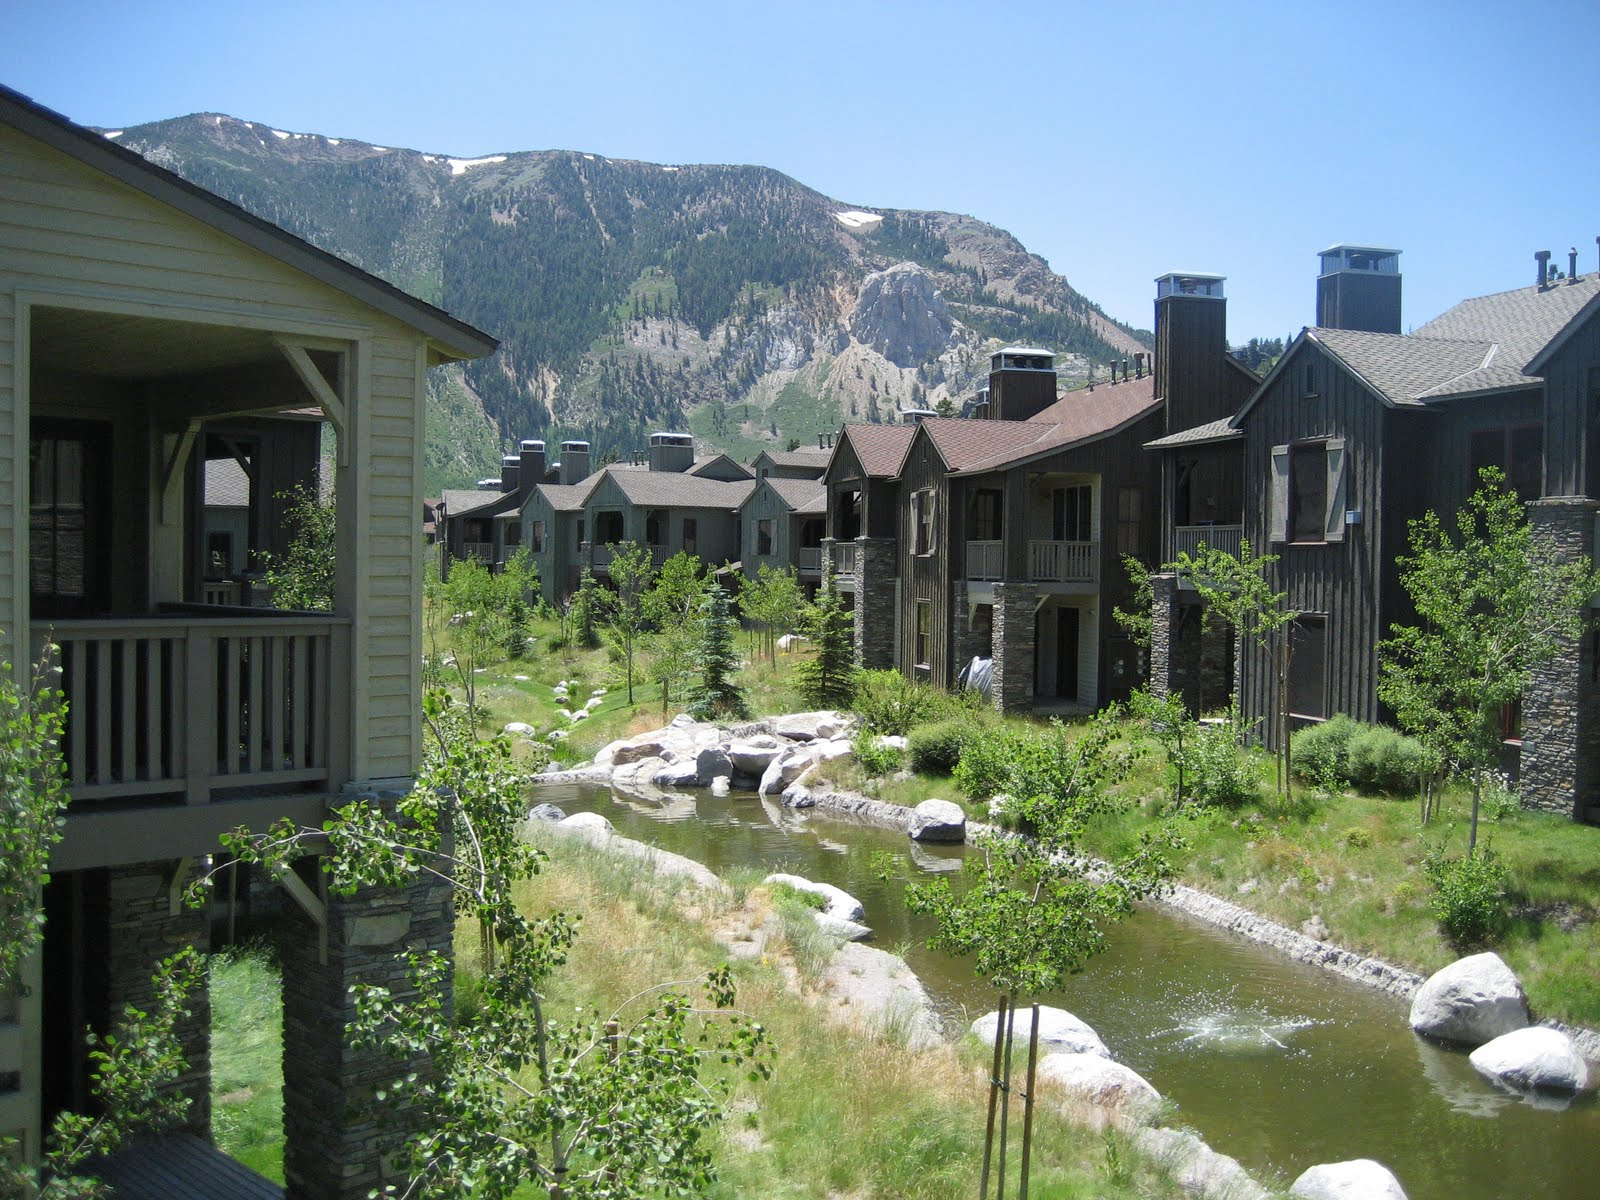 The Lodges Luxury Townhome Rentals